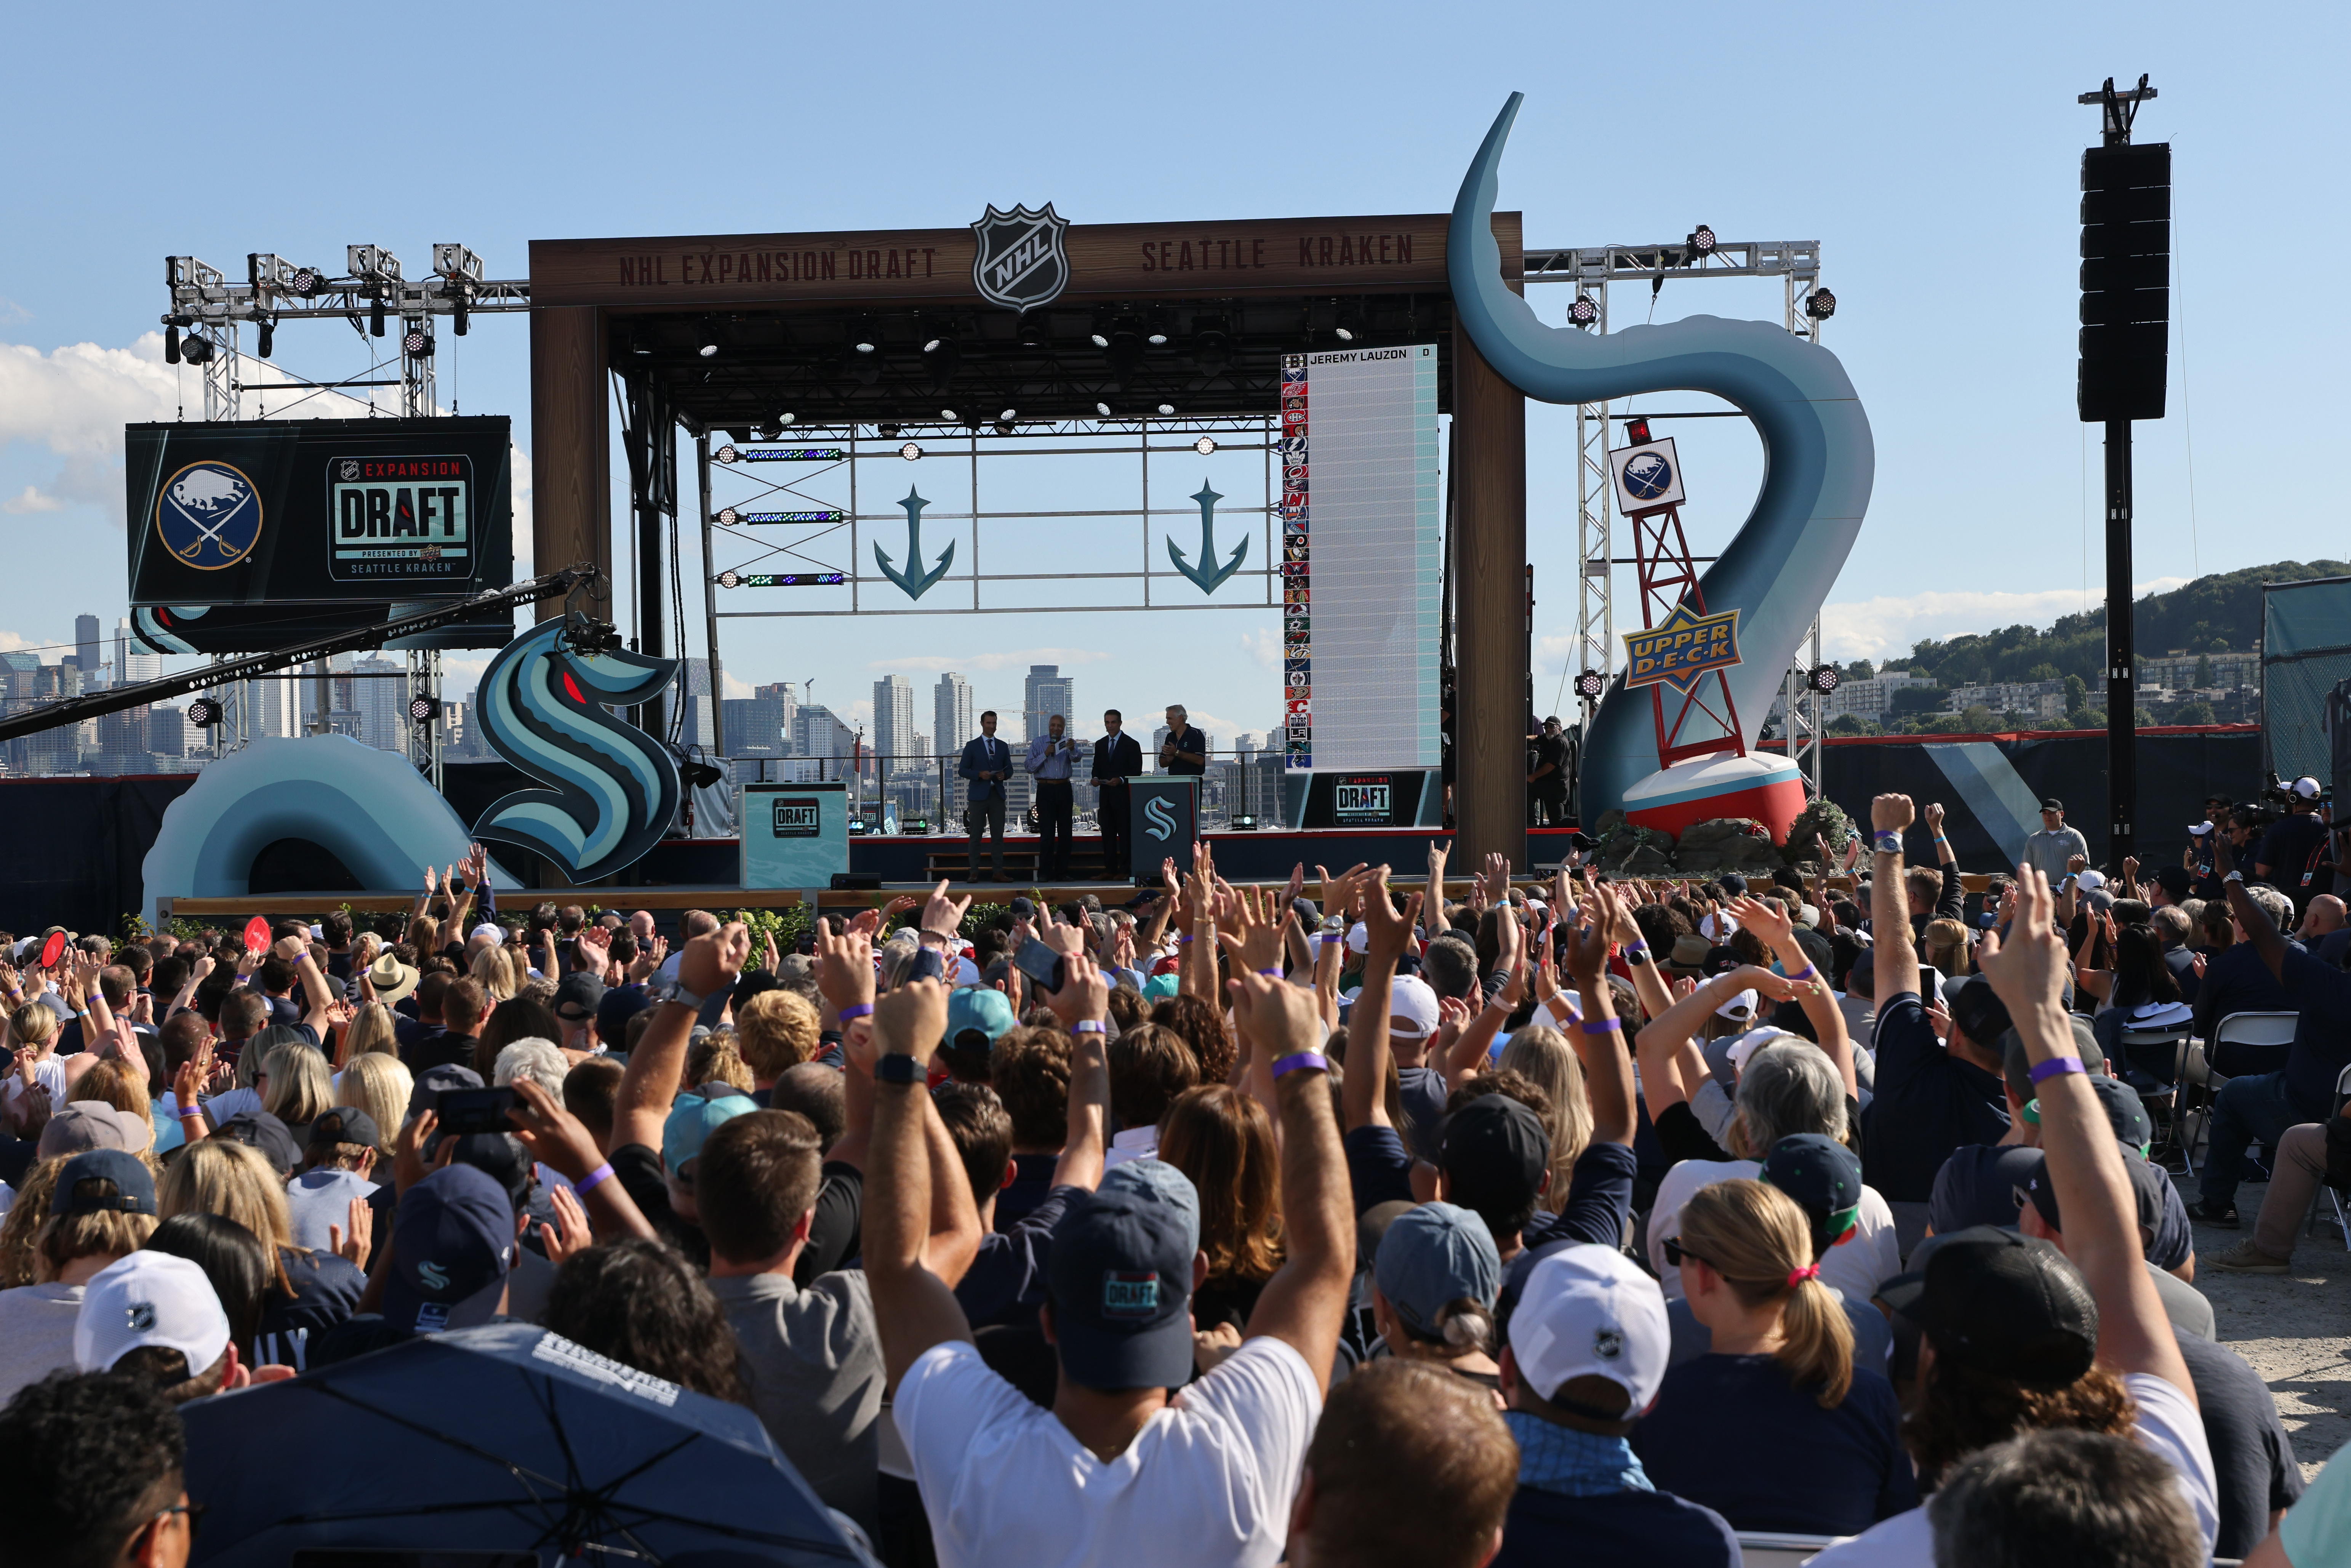 Fans cheer during the Seattle Kraken 2021 NHL expansion draft at Gas Works Park on July 21, 2021 in Seattle, Washington. Thousands of free tickets were available to fans to attend this live broadcast event on ESPN2 to watch the Kraken make 30 selections to build their first roster in franchise history. Boats were encouraged to sail-gate.